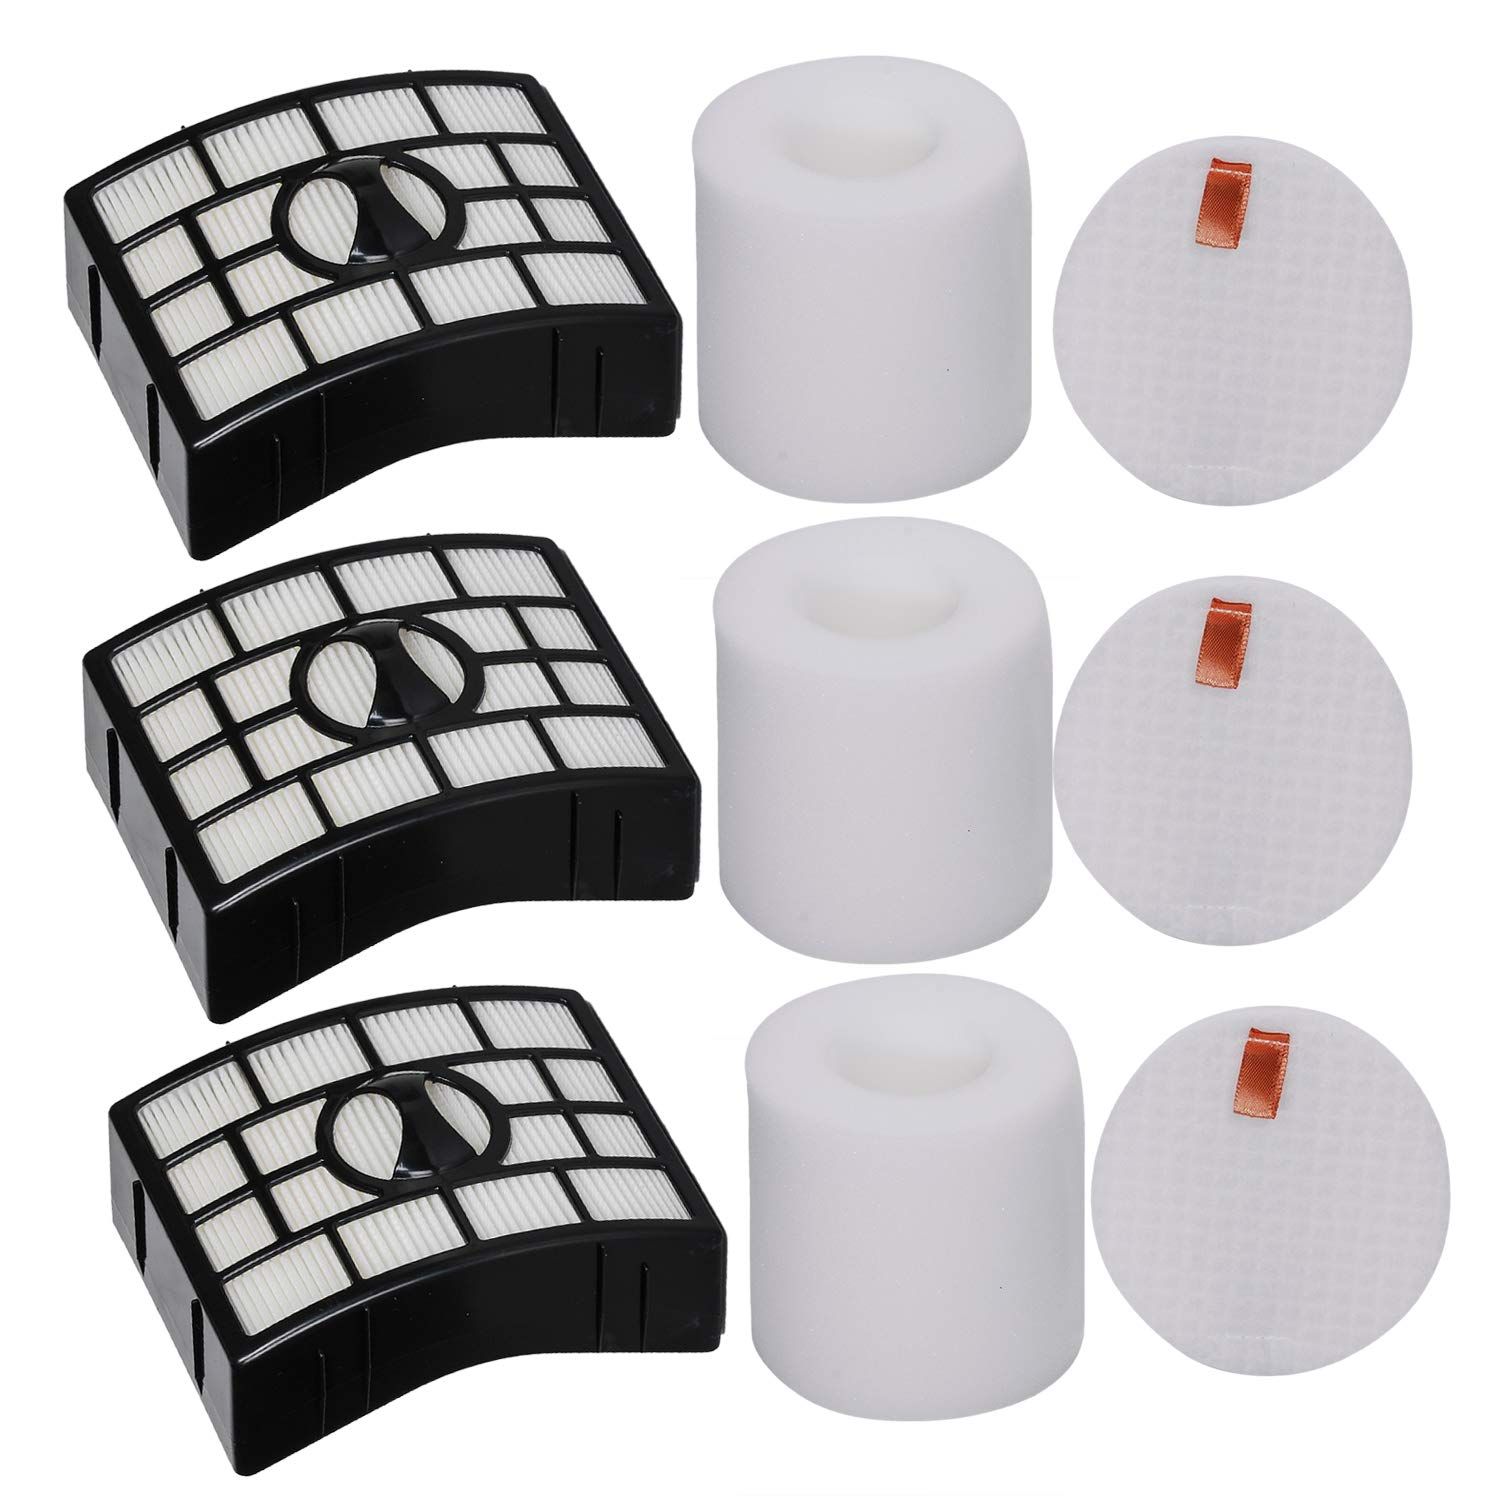 HIFROM Replacement HEPA Filter & Foam Felt Filter for Shark Rotator Powered Lift-Away Models NV650 NV650W NV651 NV652 NV750W NV751 NV752 NV831 NV835 AX950 AX951 Vacuums Replaces Part# XFF650 & XHF650